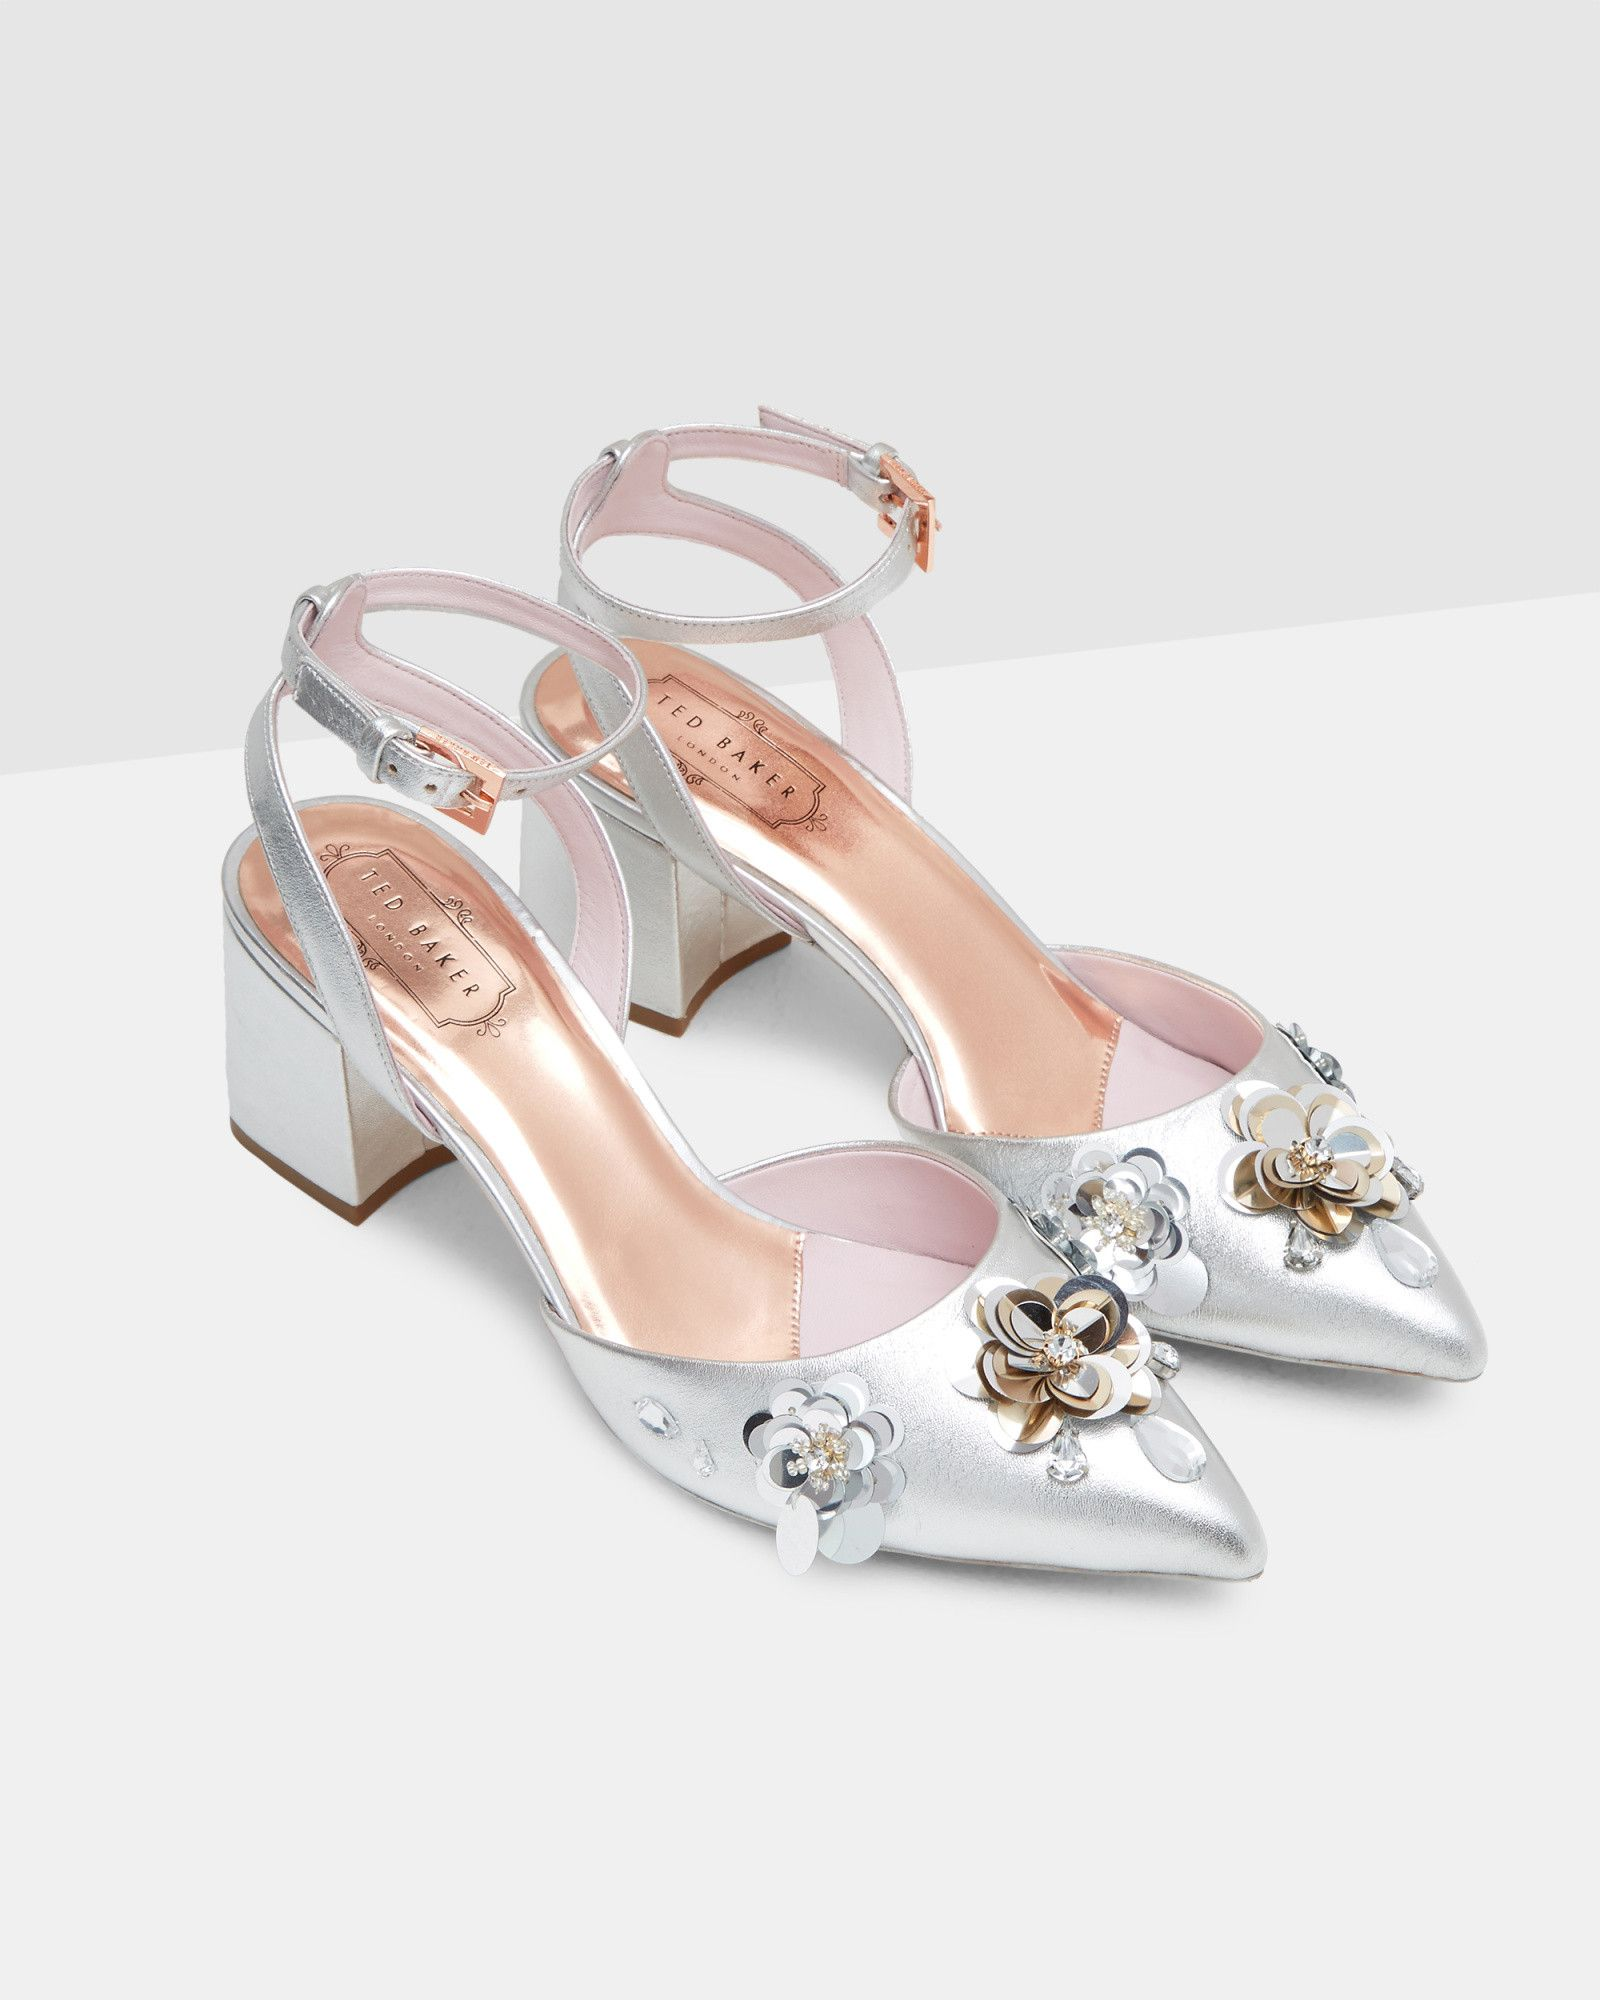 10 Gorgeous Mid Heels For Brides And Bridesmaids Wedding Shoes Heels Silver Wedding Shoes Wedding Shoes